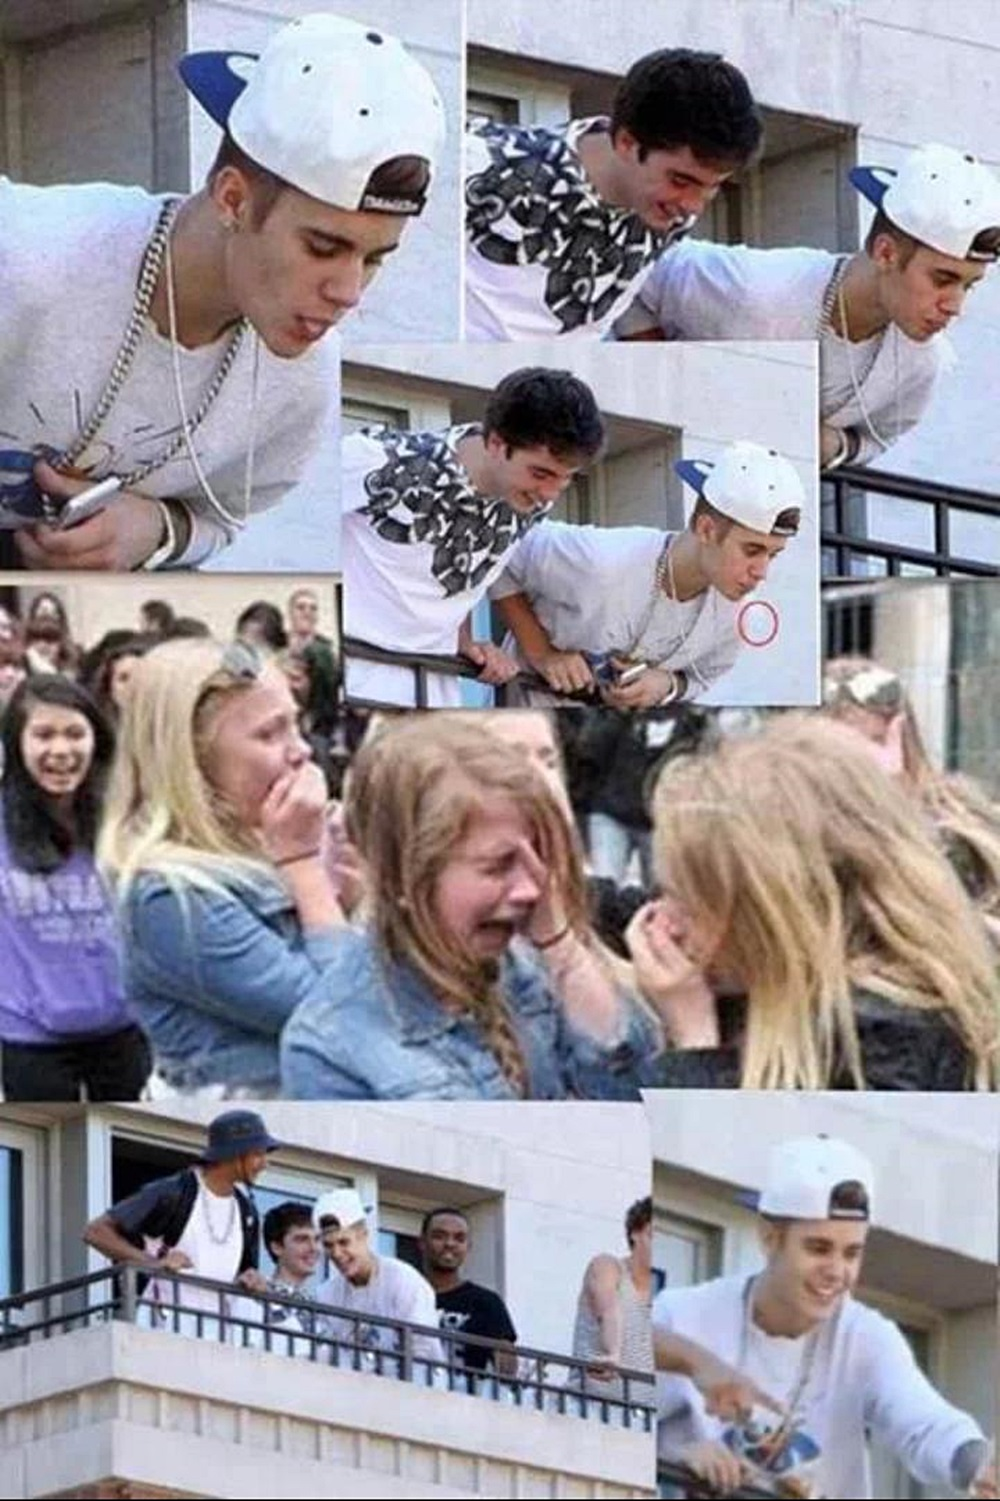 Justin-Bieber-spits-at-fans